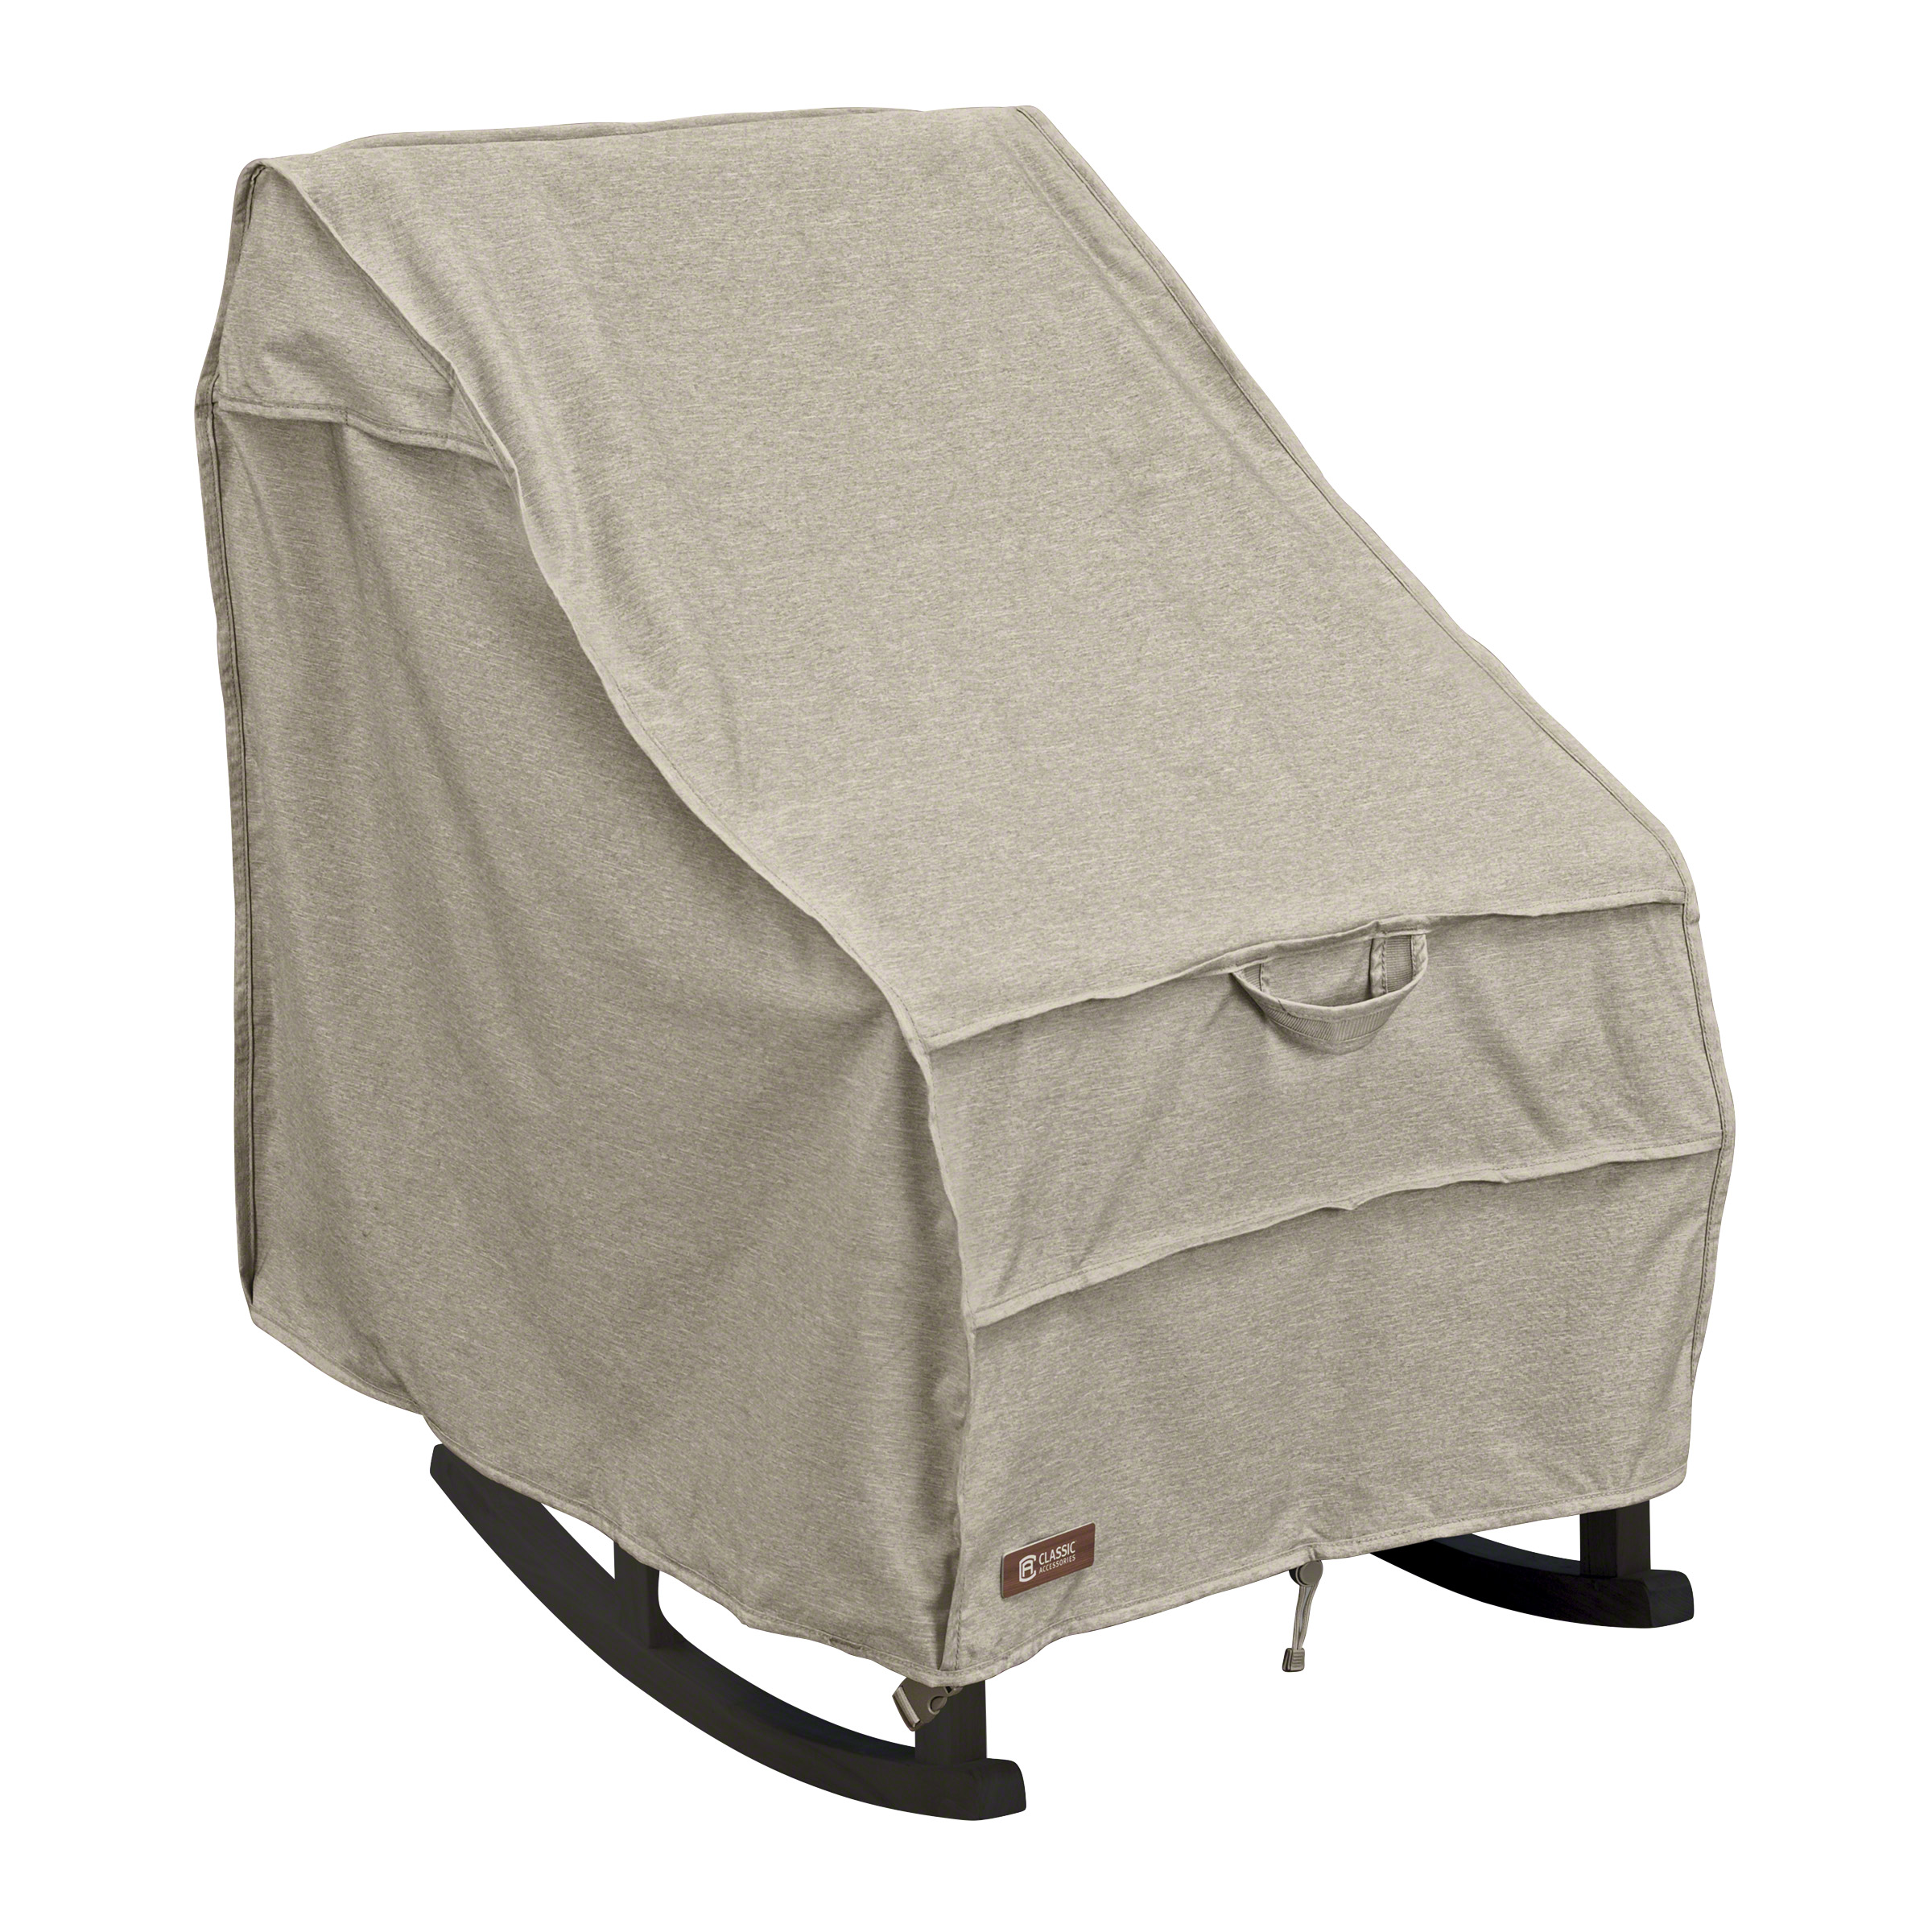 Charmant Classic Accessories Montlake™ FadeSafe® Patio Rocking Chair Cover   Heavy  Duty Outdoor Furniture Cover